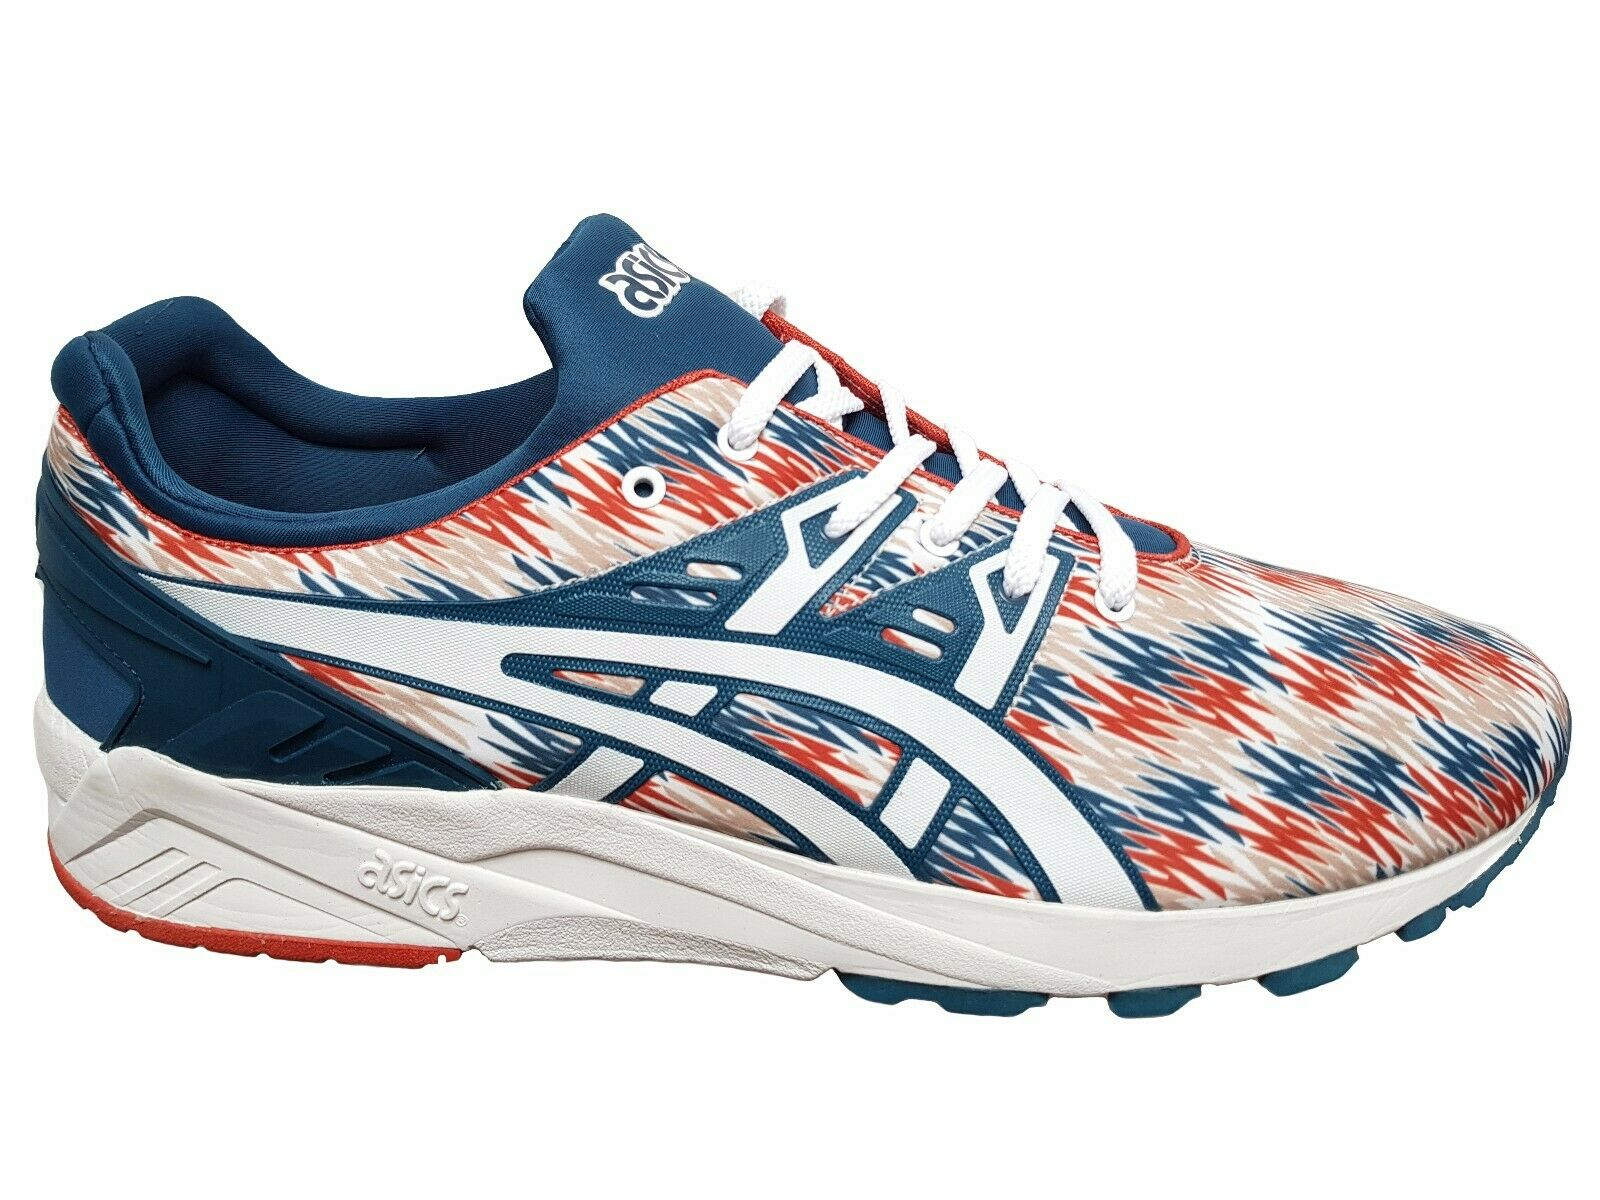 Asics Gel-Kayano Evo Men's Trainers, Legion bluee White, H6C3N 4501, 13 UK  49 EU